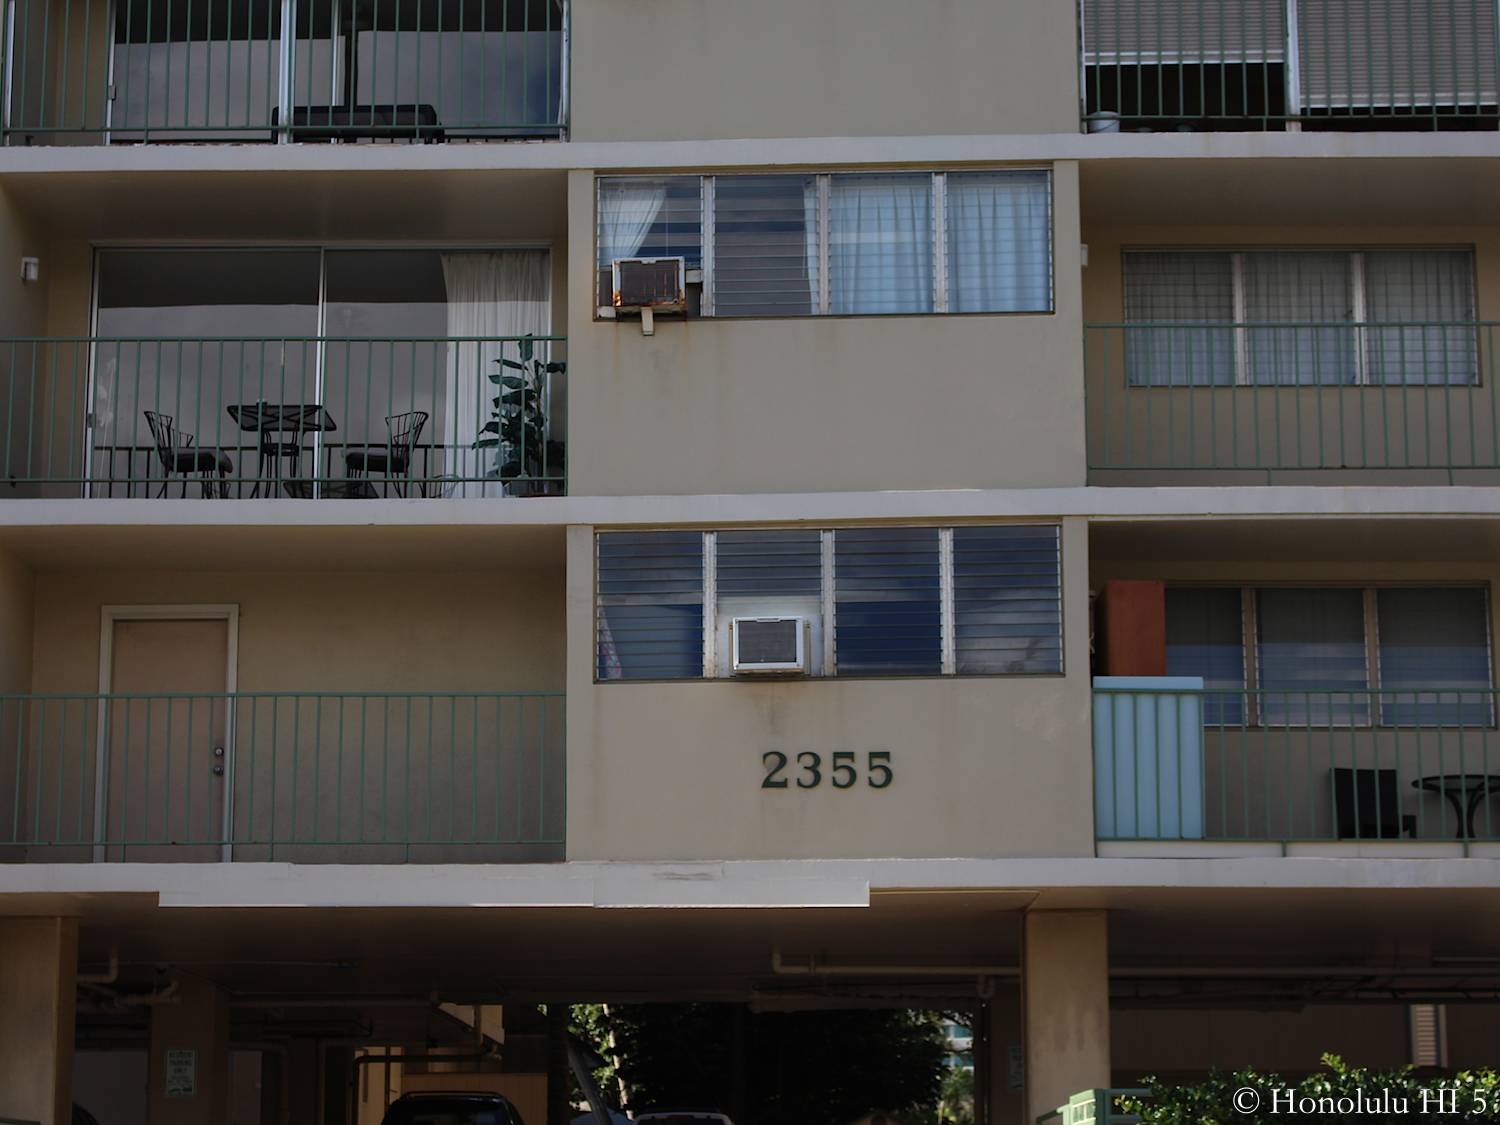 Lower Floor of Ala Wai Palms. Old White Building. Small Balconies.